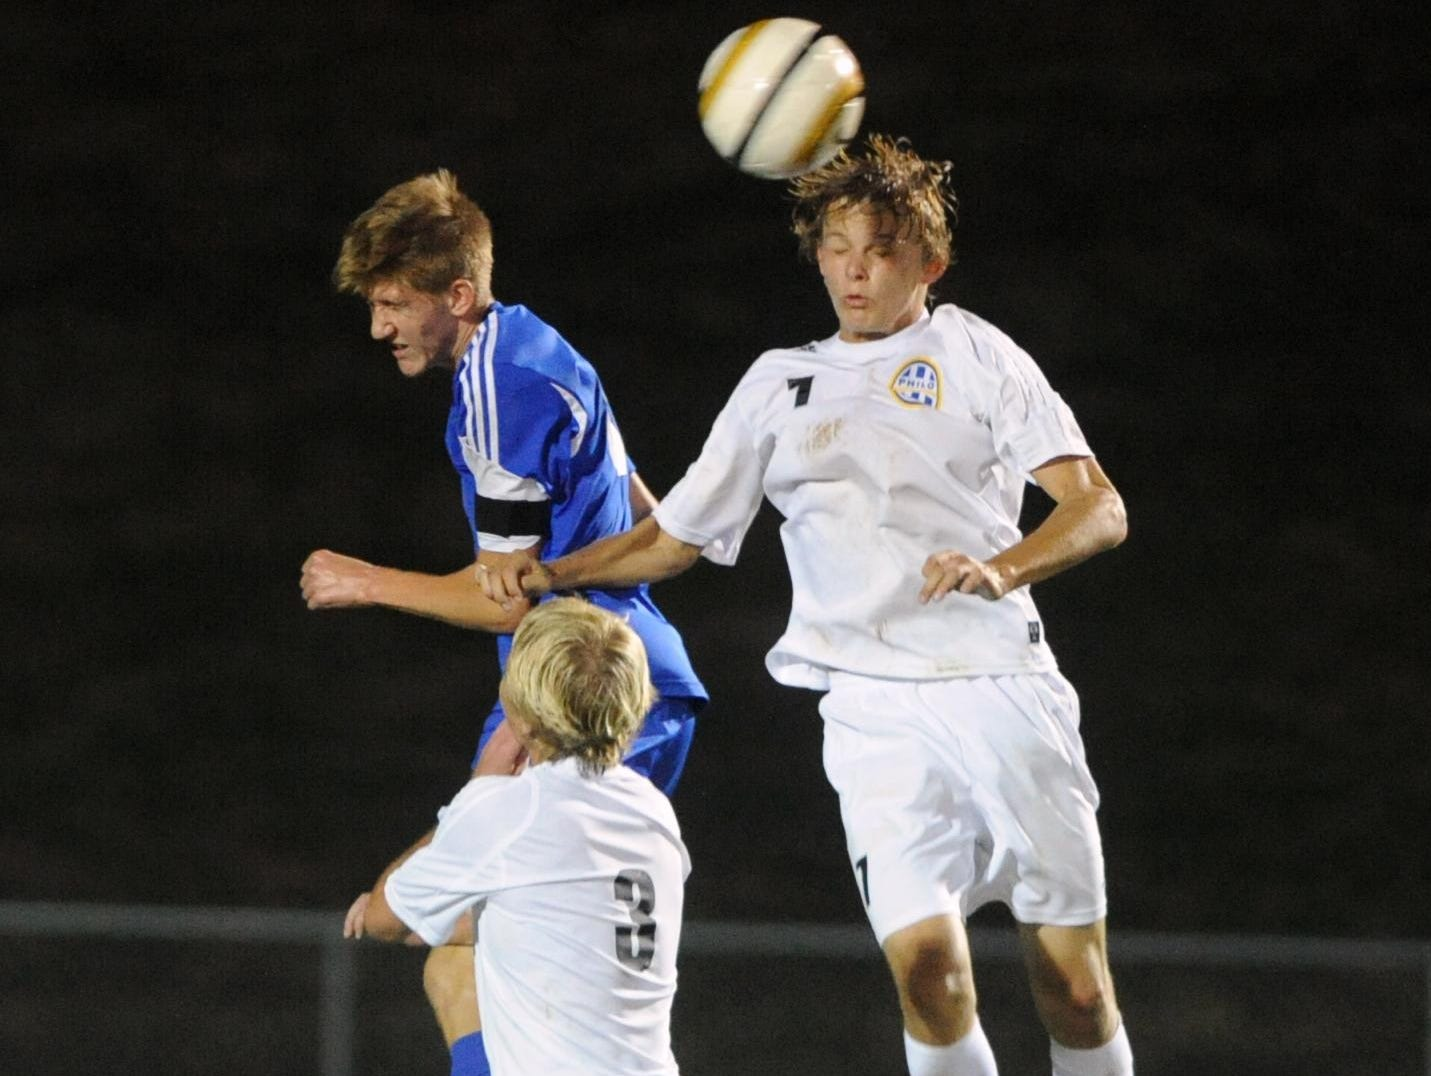 Philo's Wyatt Carder and West Muskingum's Jeremy Moore leap to head a ball during West M's 4-1 victory over Philo on Tuesday in Duncan Falls.